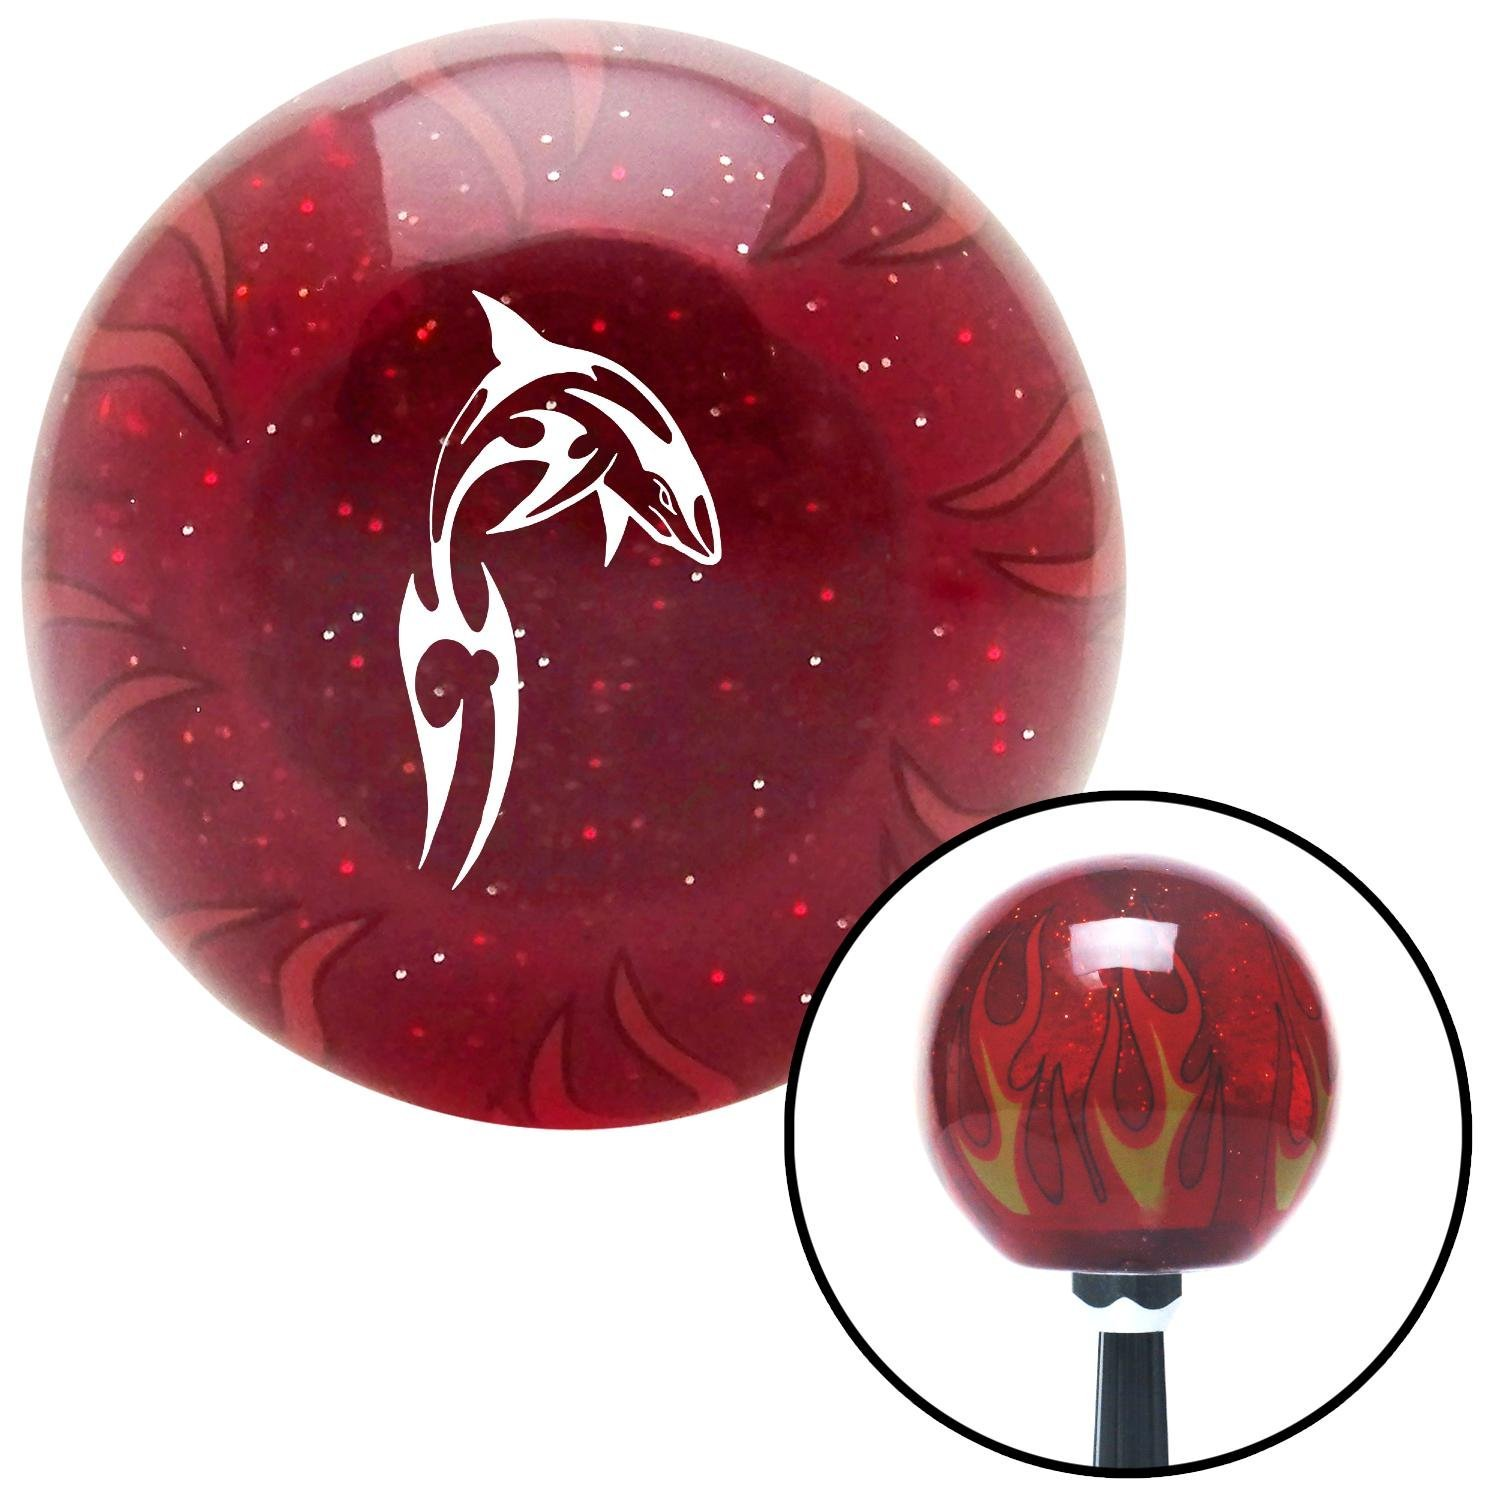 American Shifter 241134 Red Flame Metal Flake Shift Knob with M16 x 1.5 Insert White Abstract Shark